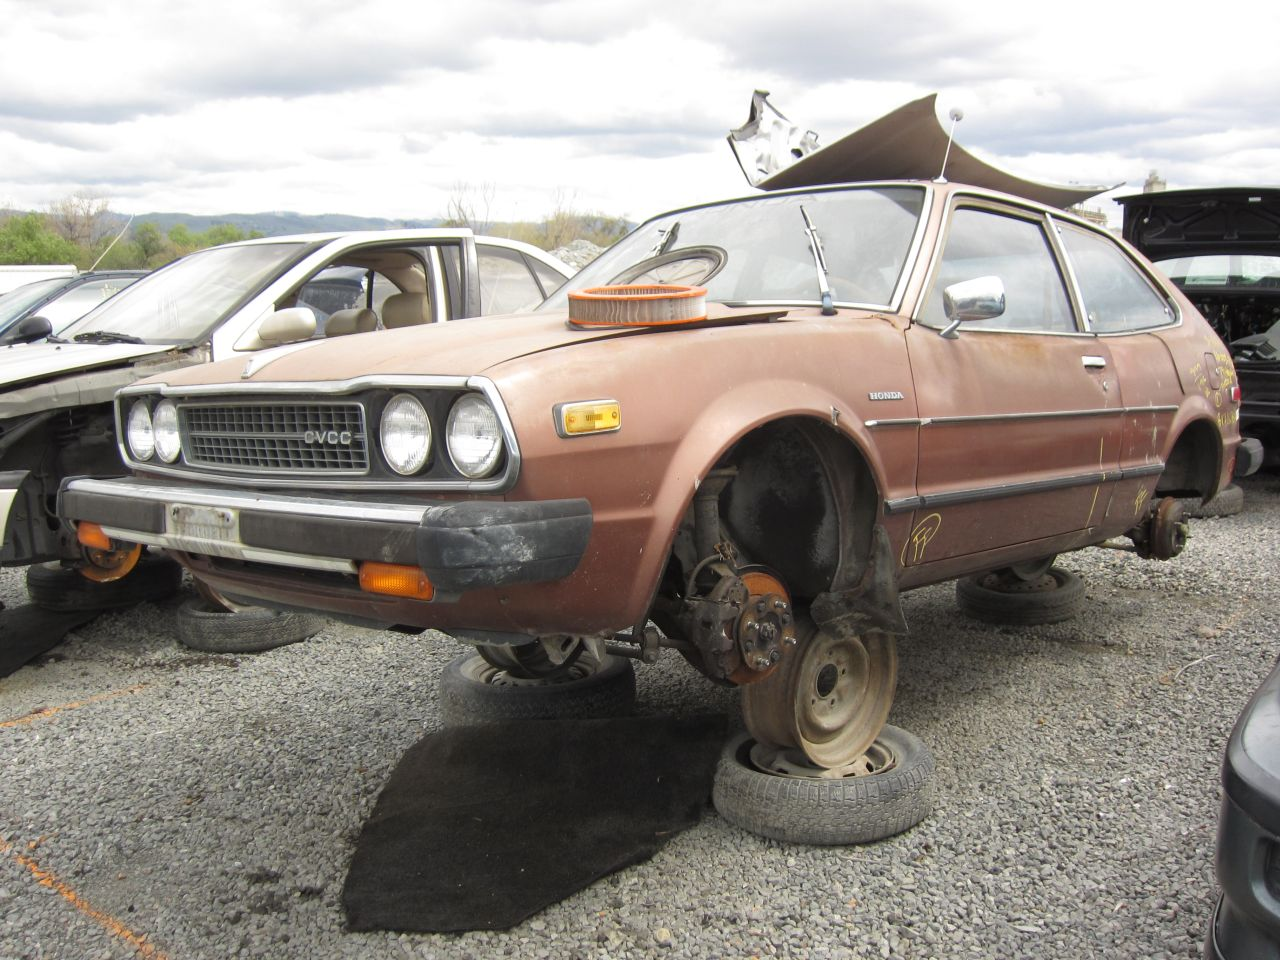 Junkyard Find 1979 Honda Accord Lx The Truth About Cars 89 Lxi Belt Diagram 1989 4 Door You Still See Occasional First Gen Buzzing Along But Its Not Worth Fixing One When Head Gasket Finally Goes Or Upholstery Just Gets